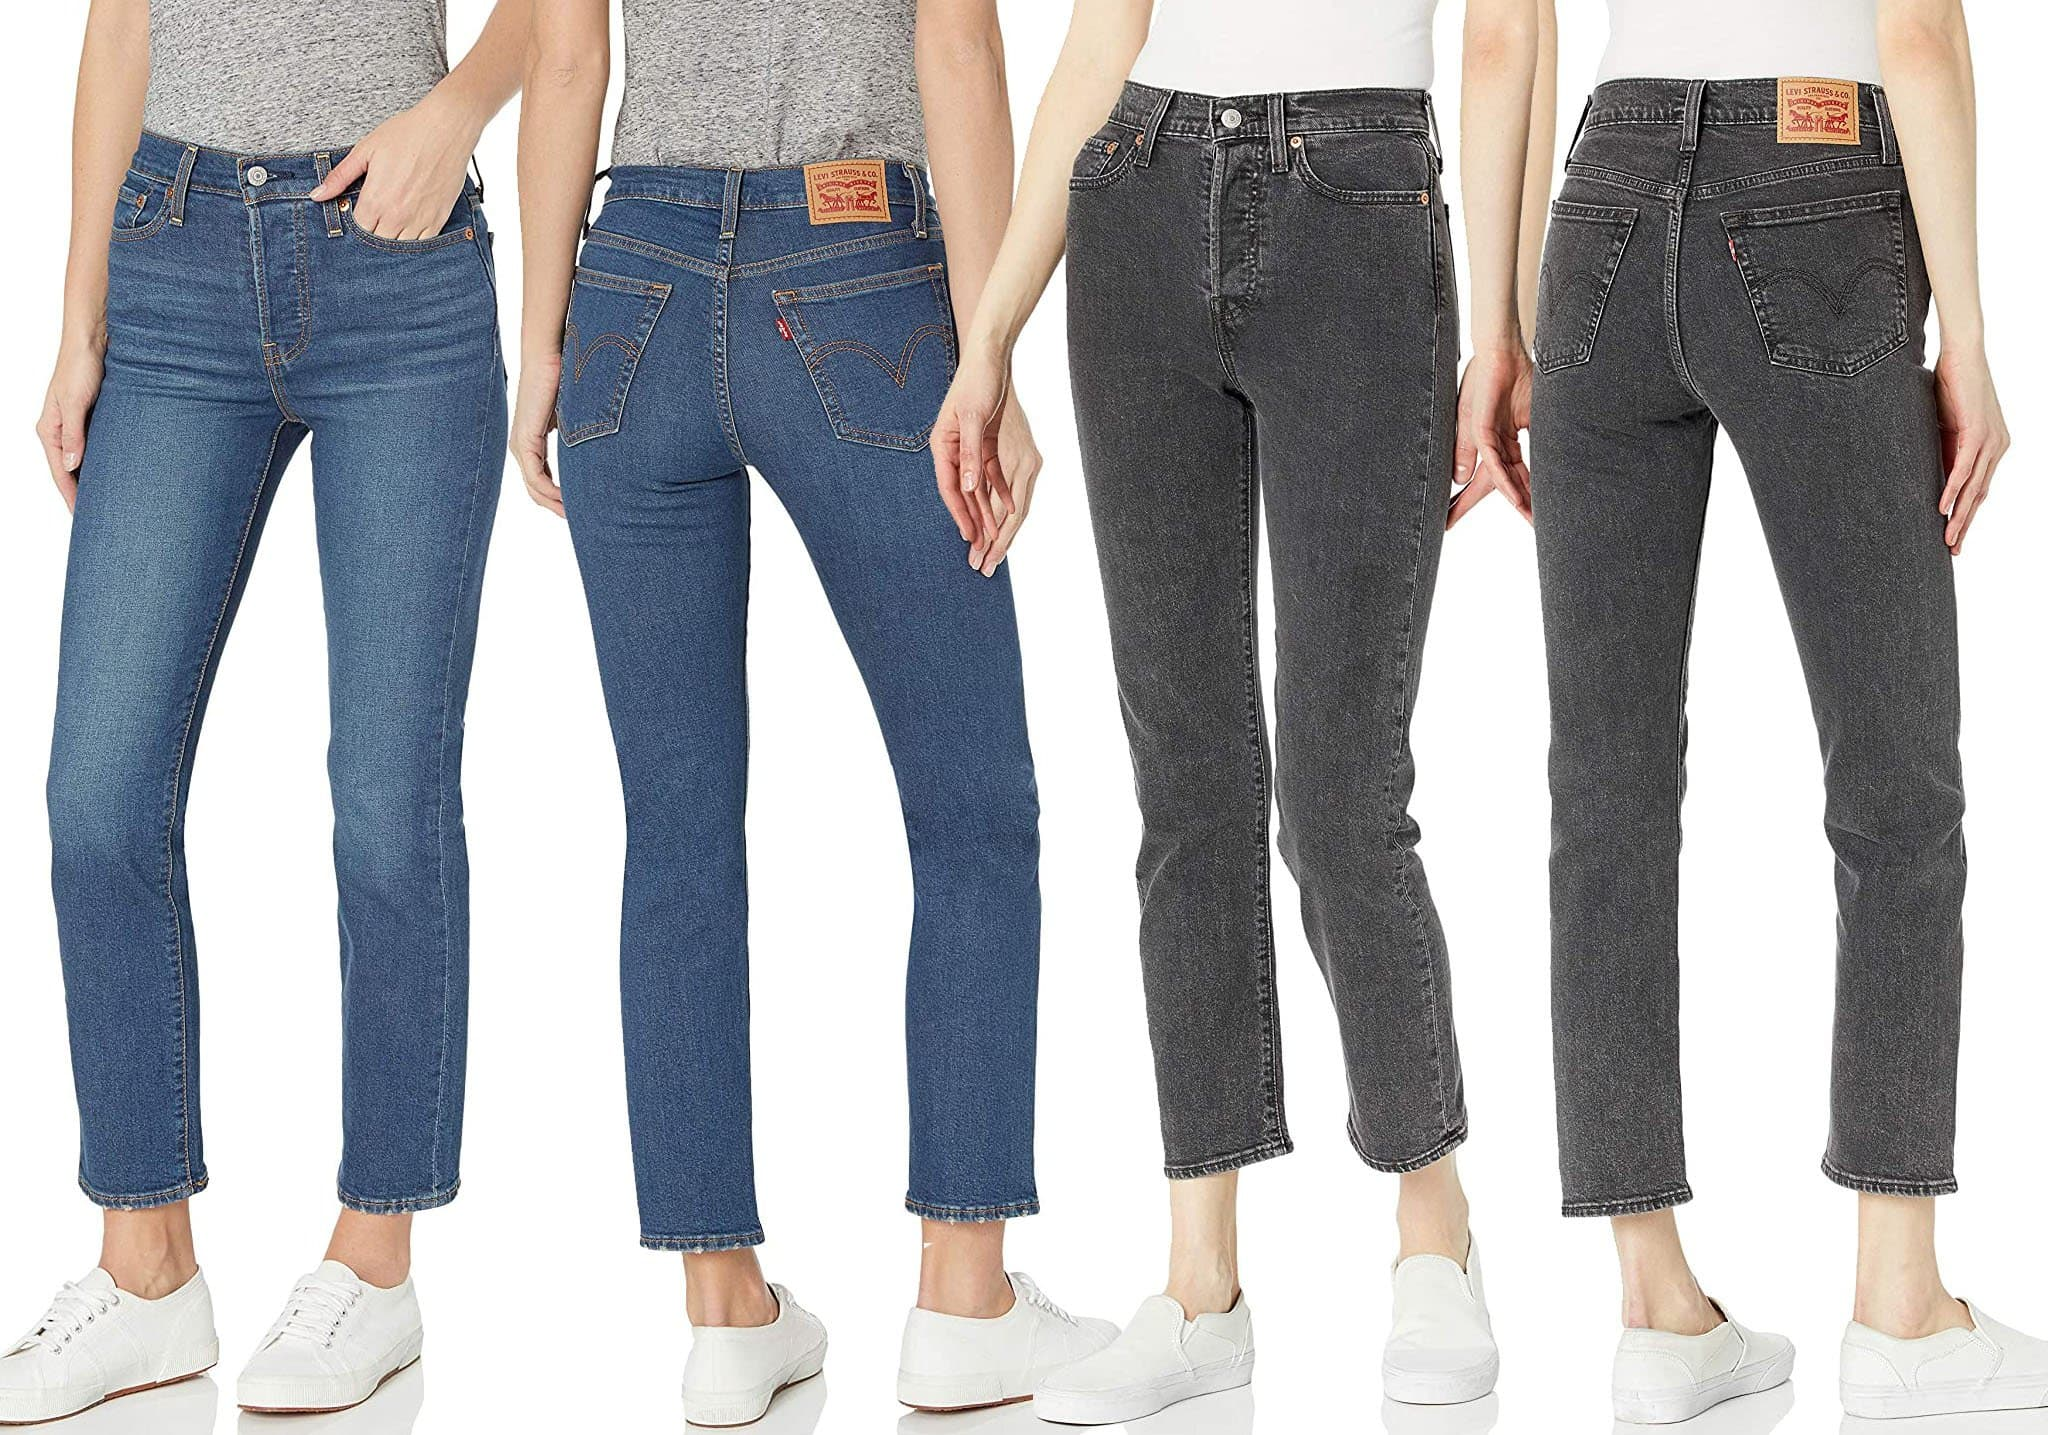 The Wedgie straight jean features a vintage-inspired style designed with a special construction to highlight your curves and give your butt an extra lift